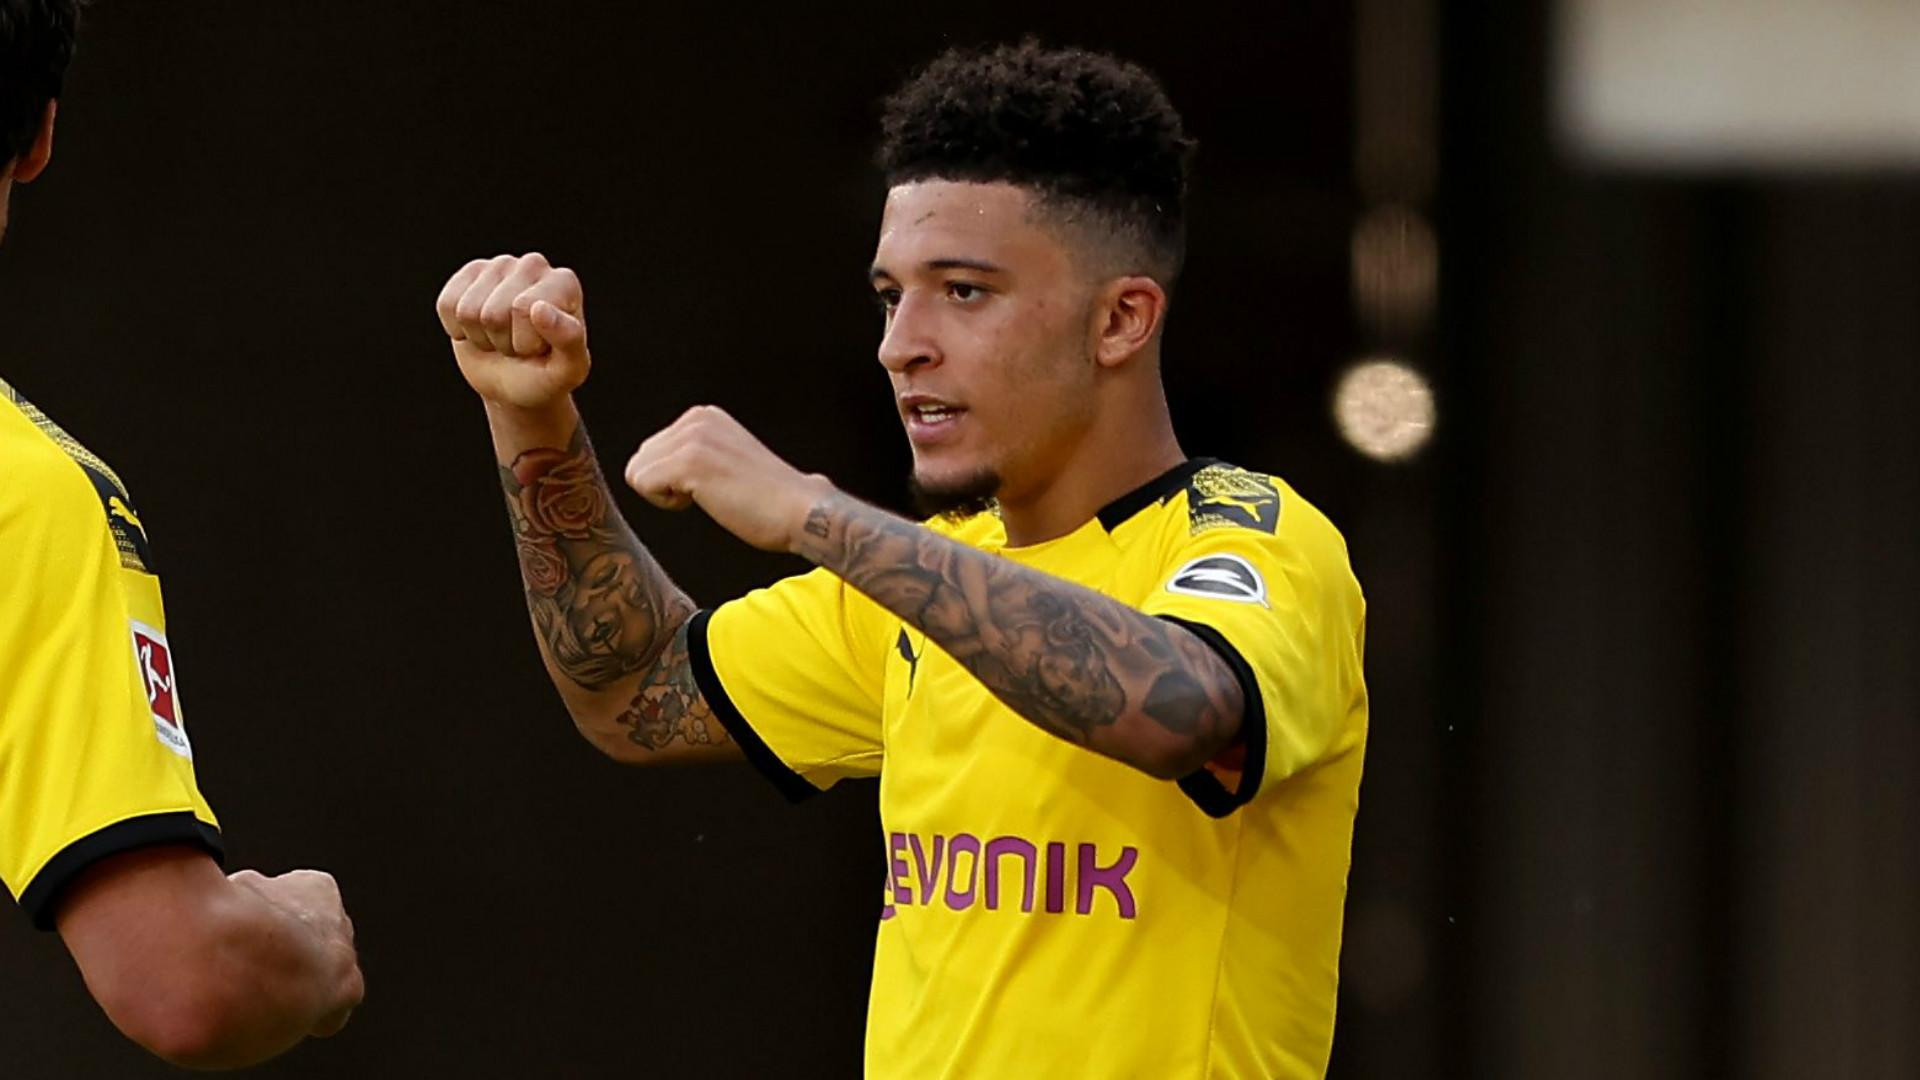 Sancho S Former Youth Coach On Street Dog Dortmund Star How He Knew He Had To Shine Against Real Madrid